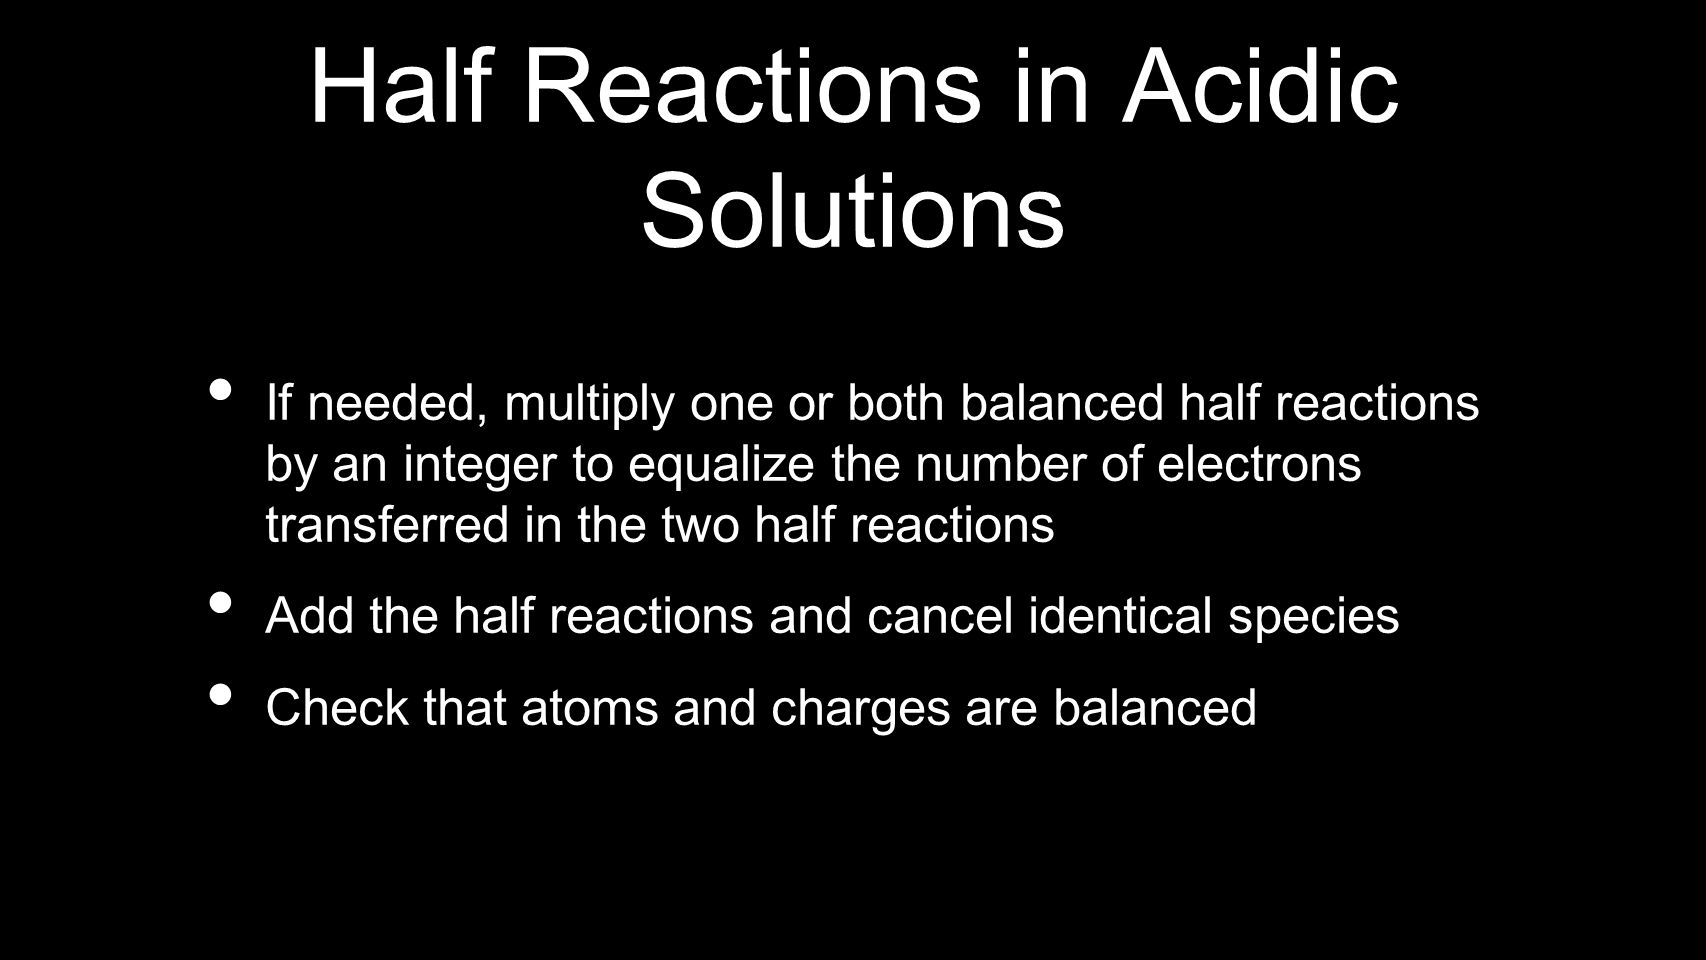 Half Reactions in Acidic Solutions